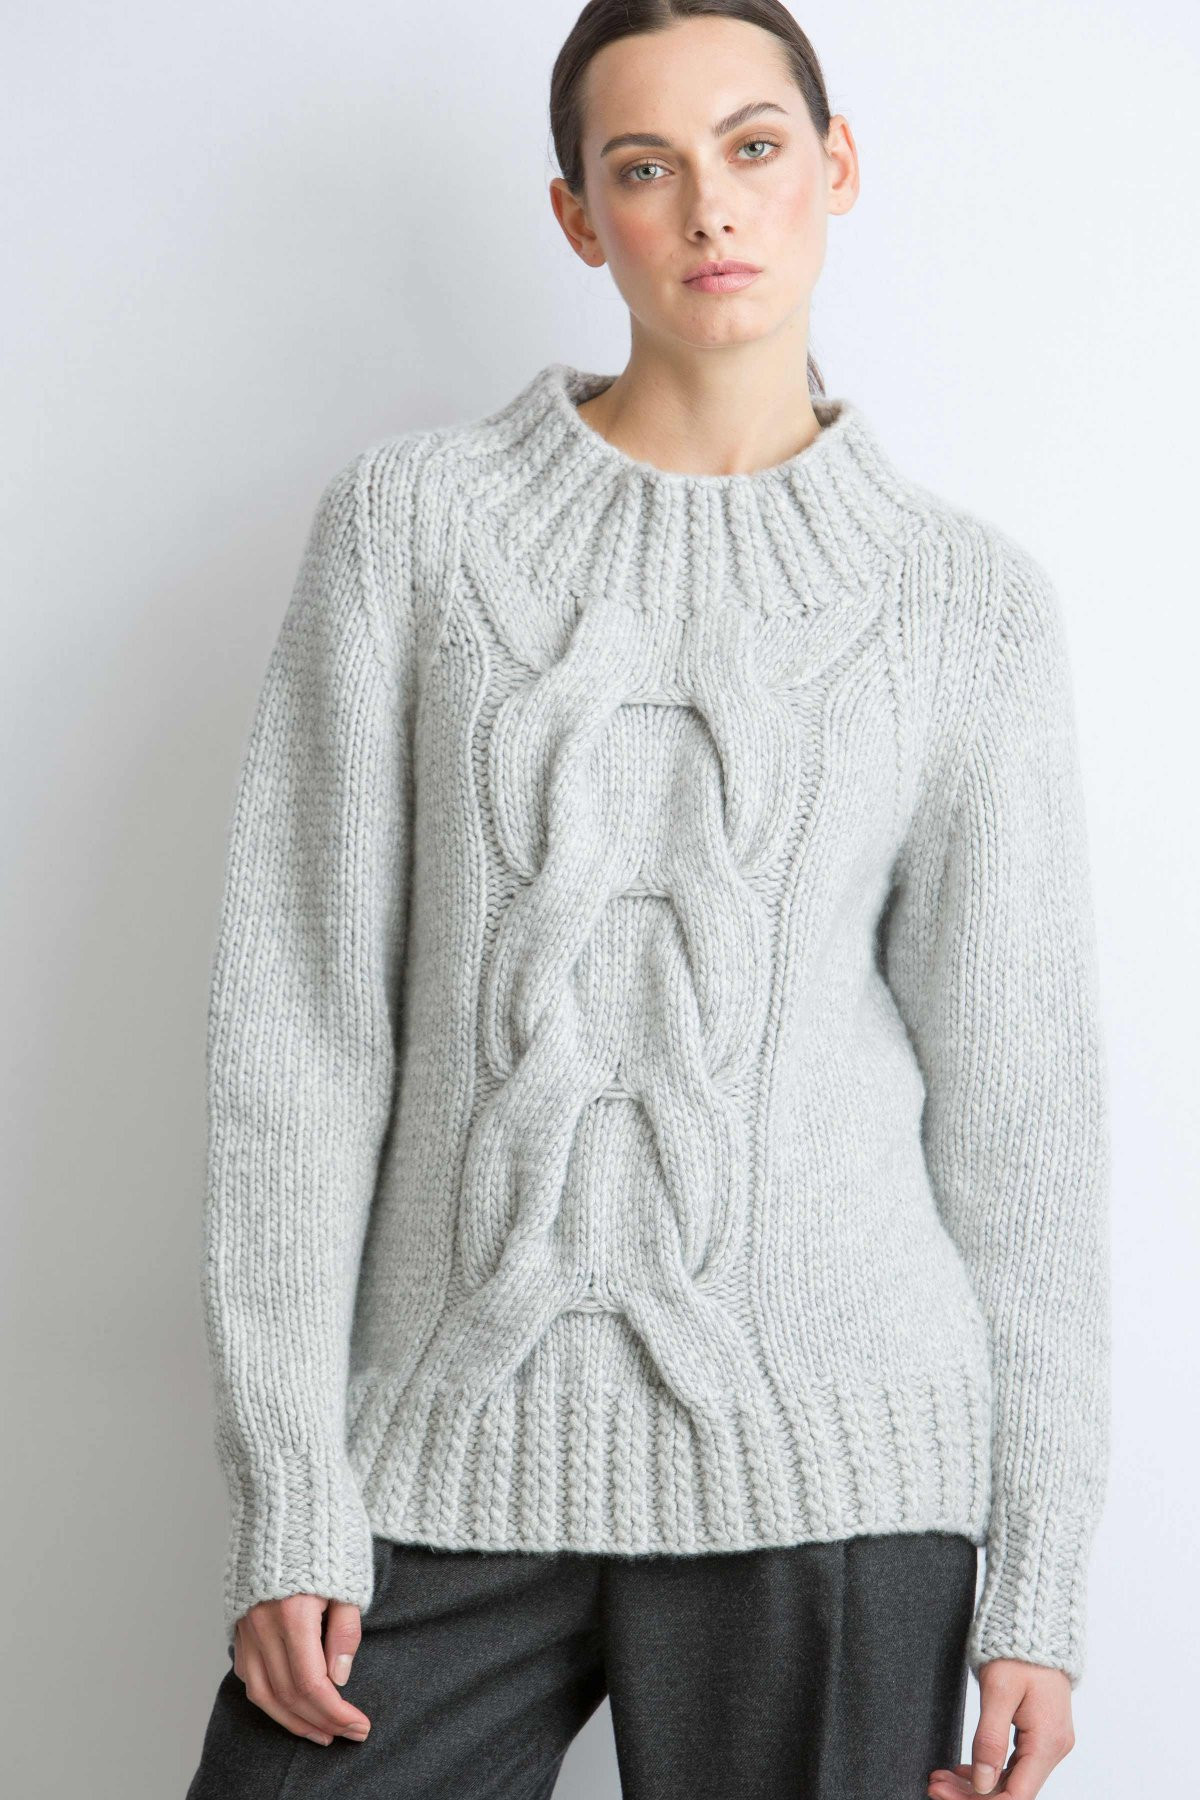 Best Of Womens Cashmere Cable Knit Sweater Baggage Clothing Ladies Cable Knit Sweater Of Charming 49 Photos Ladies Cable Knit Sweater